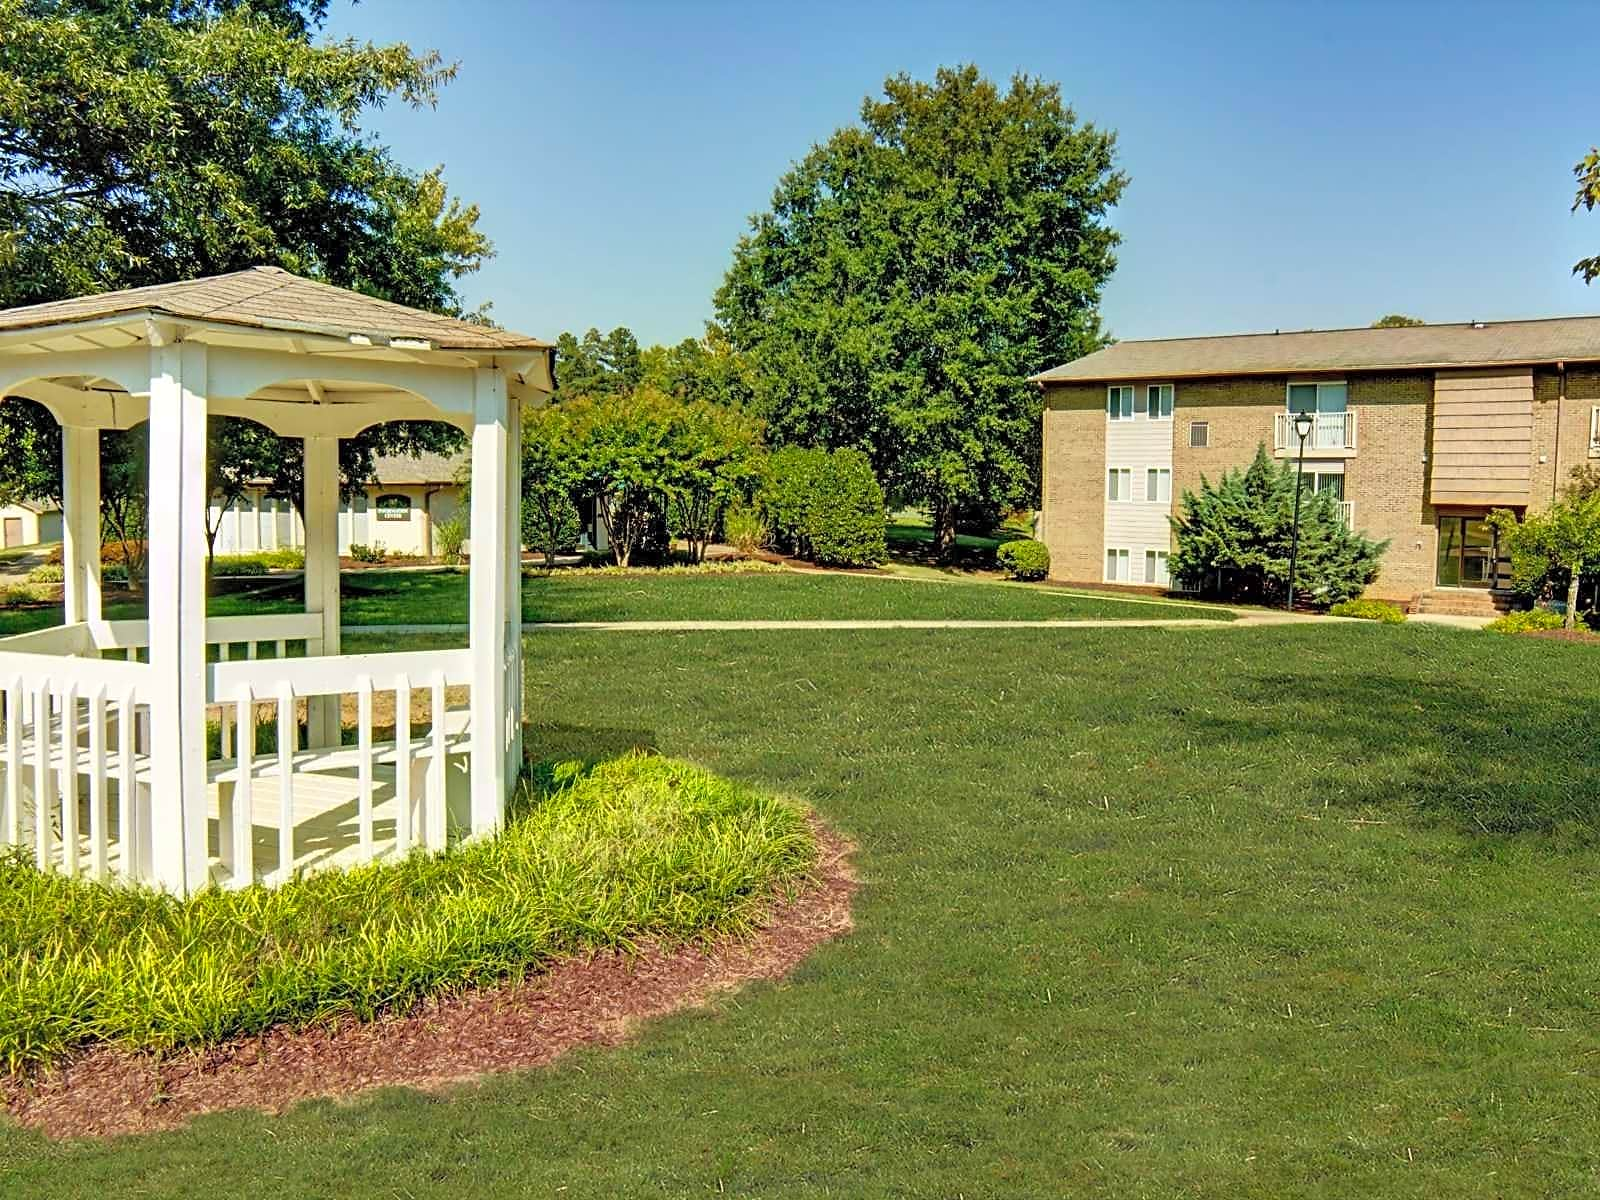 Photo: High Point Apartment for Rent - $490.00 / month; 1 Bd & 1 Ba